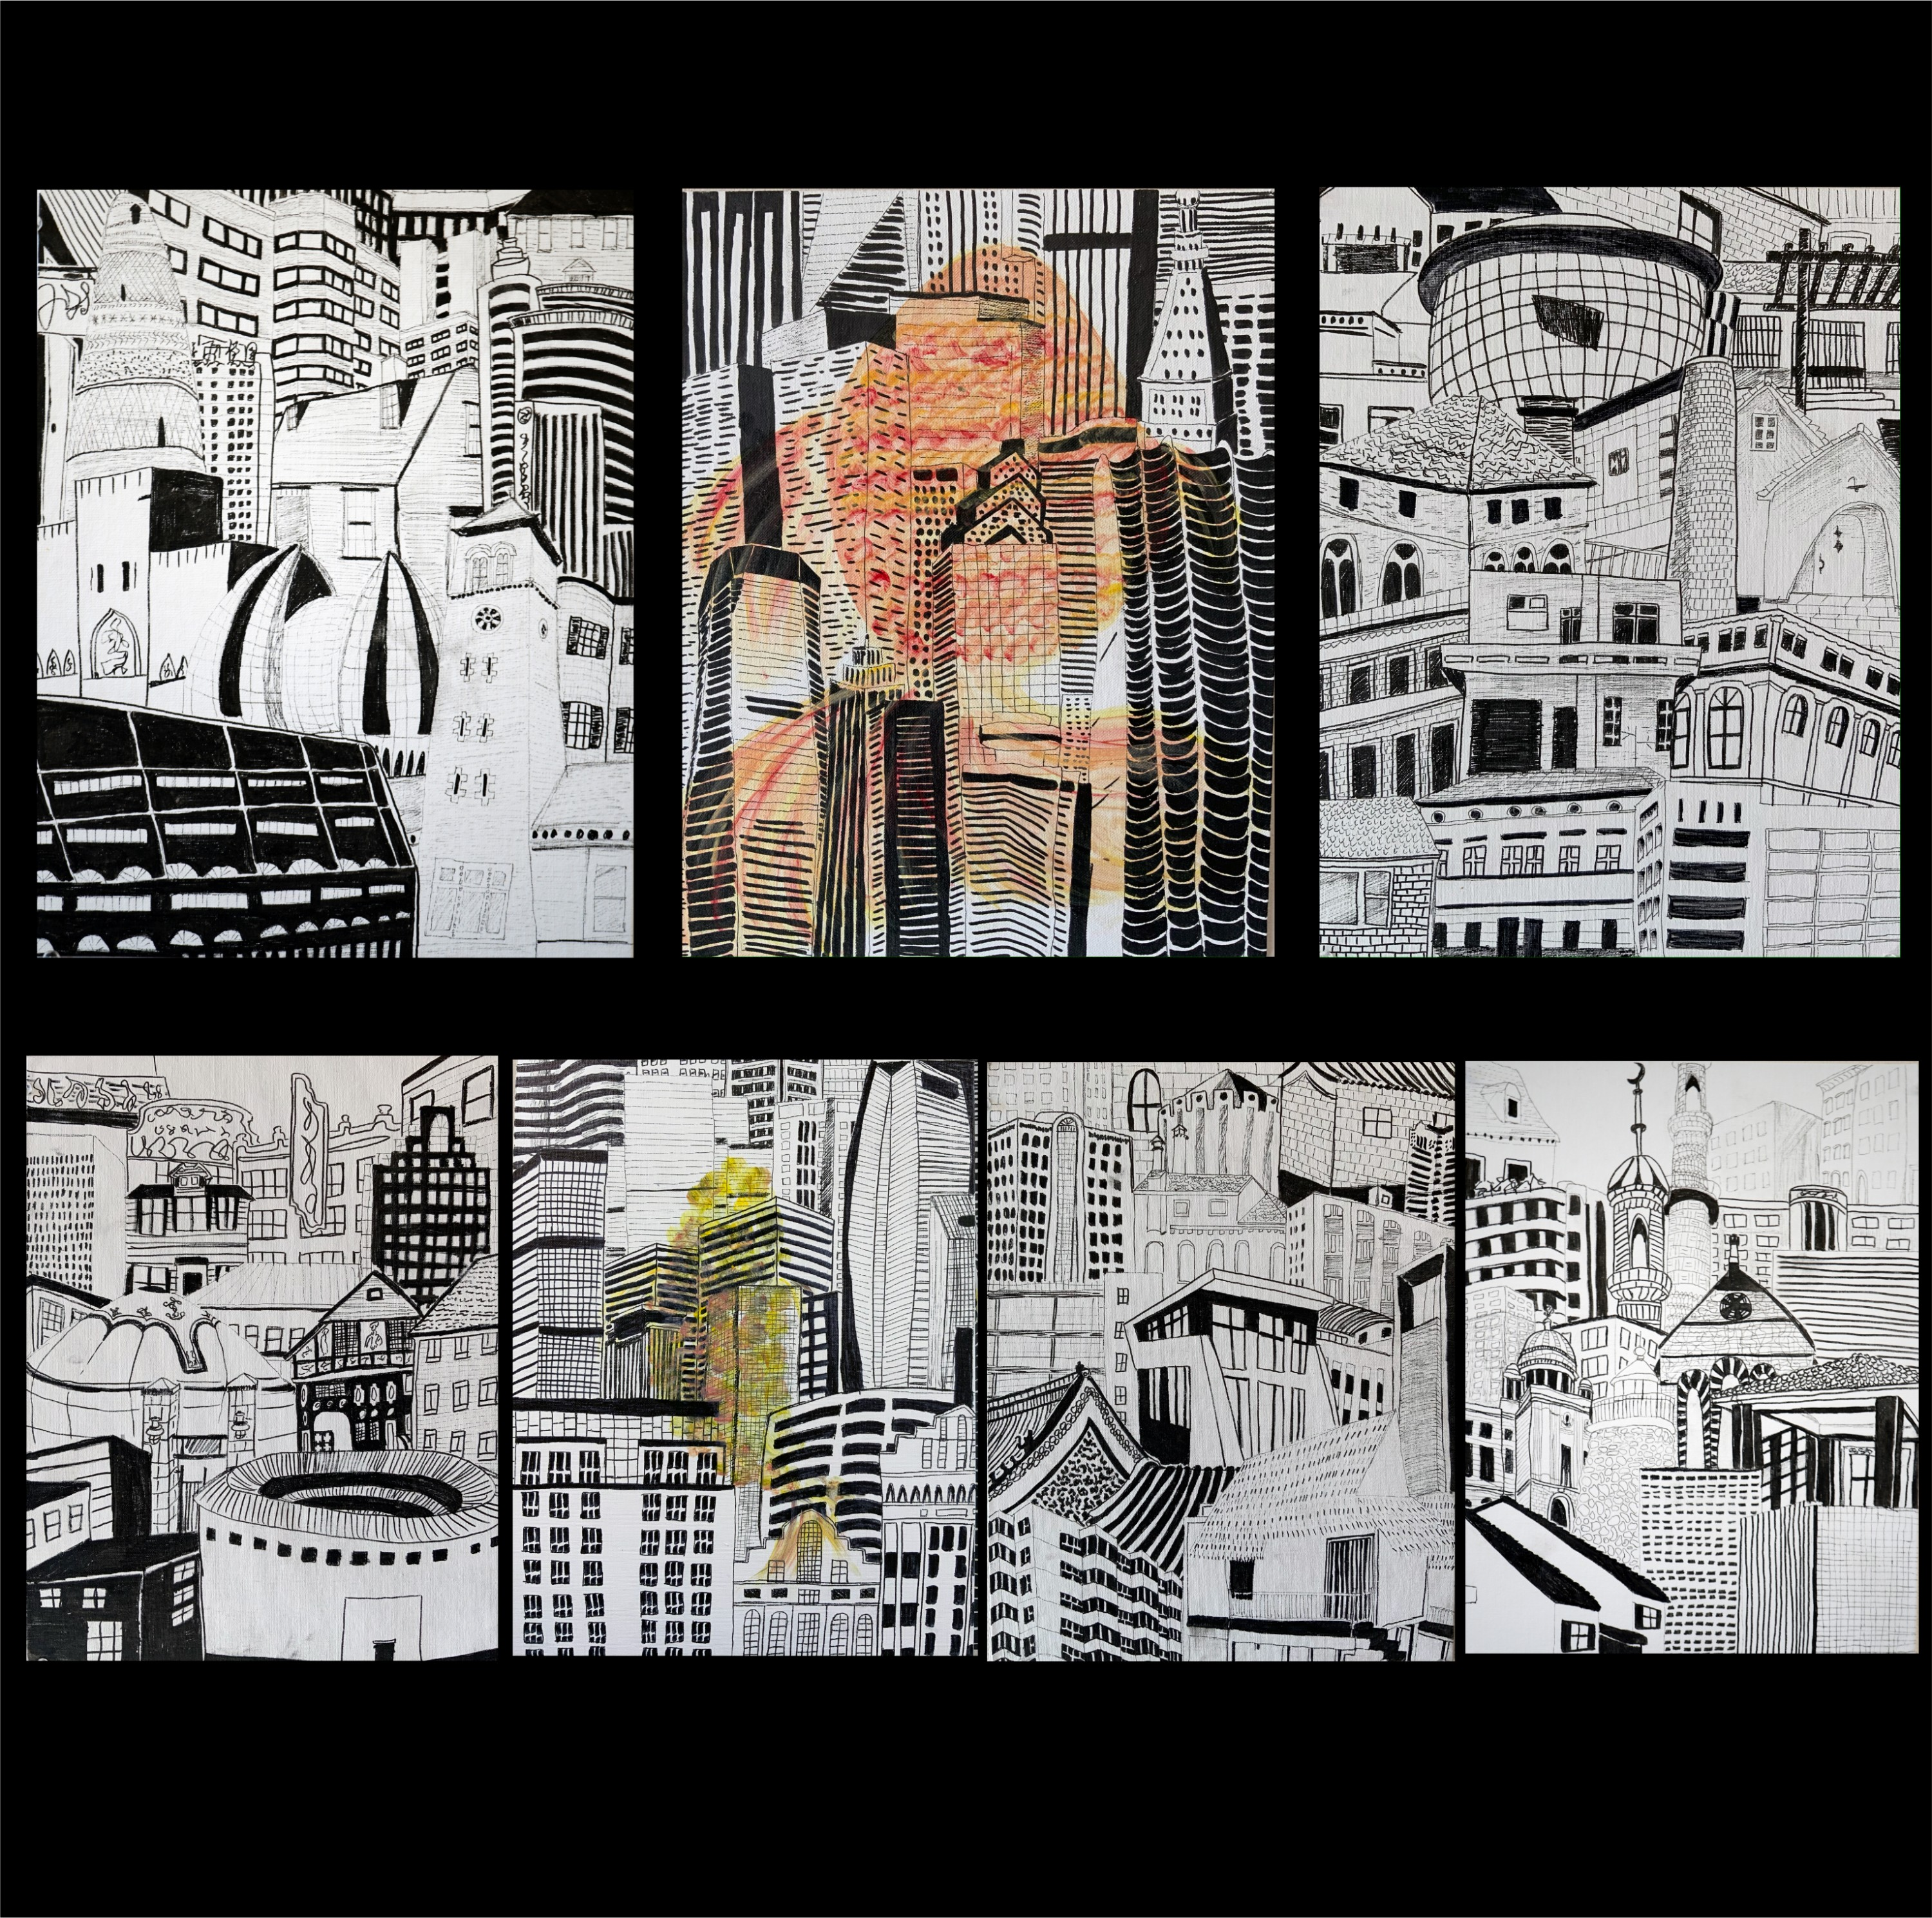 Thes are some of my early drawings of the buildings, I draw them from bottom to top, place them like fish scales. These are all building from my memories to different times and places.